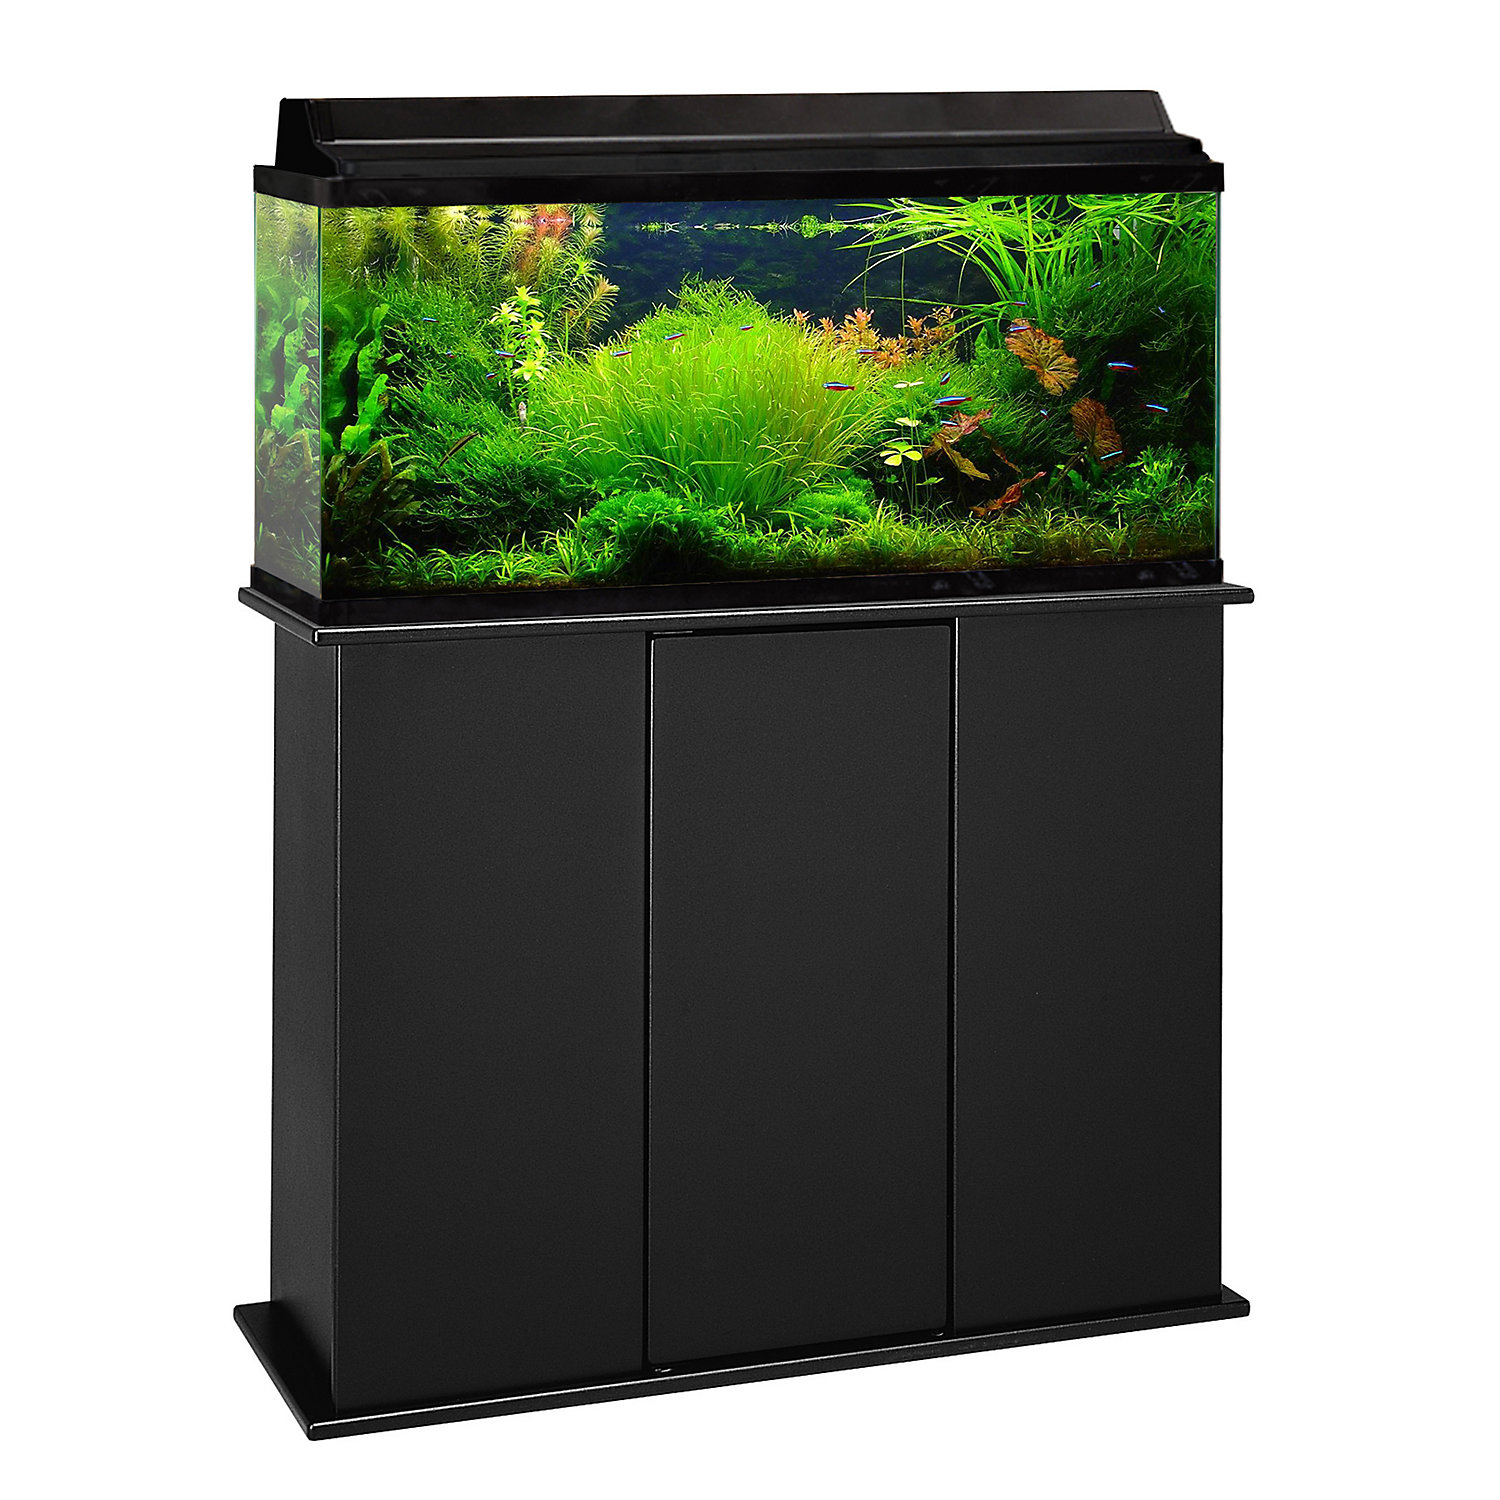 Aquatic Fundamentals 30/38/45 Gallon Upright Aquarium Stand